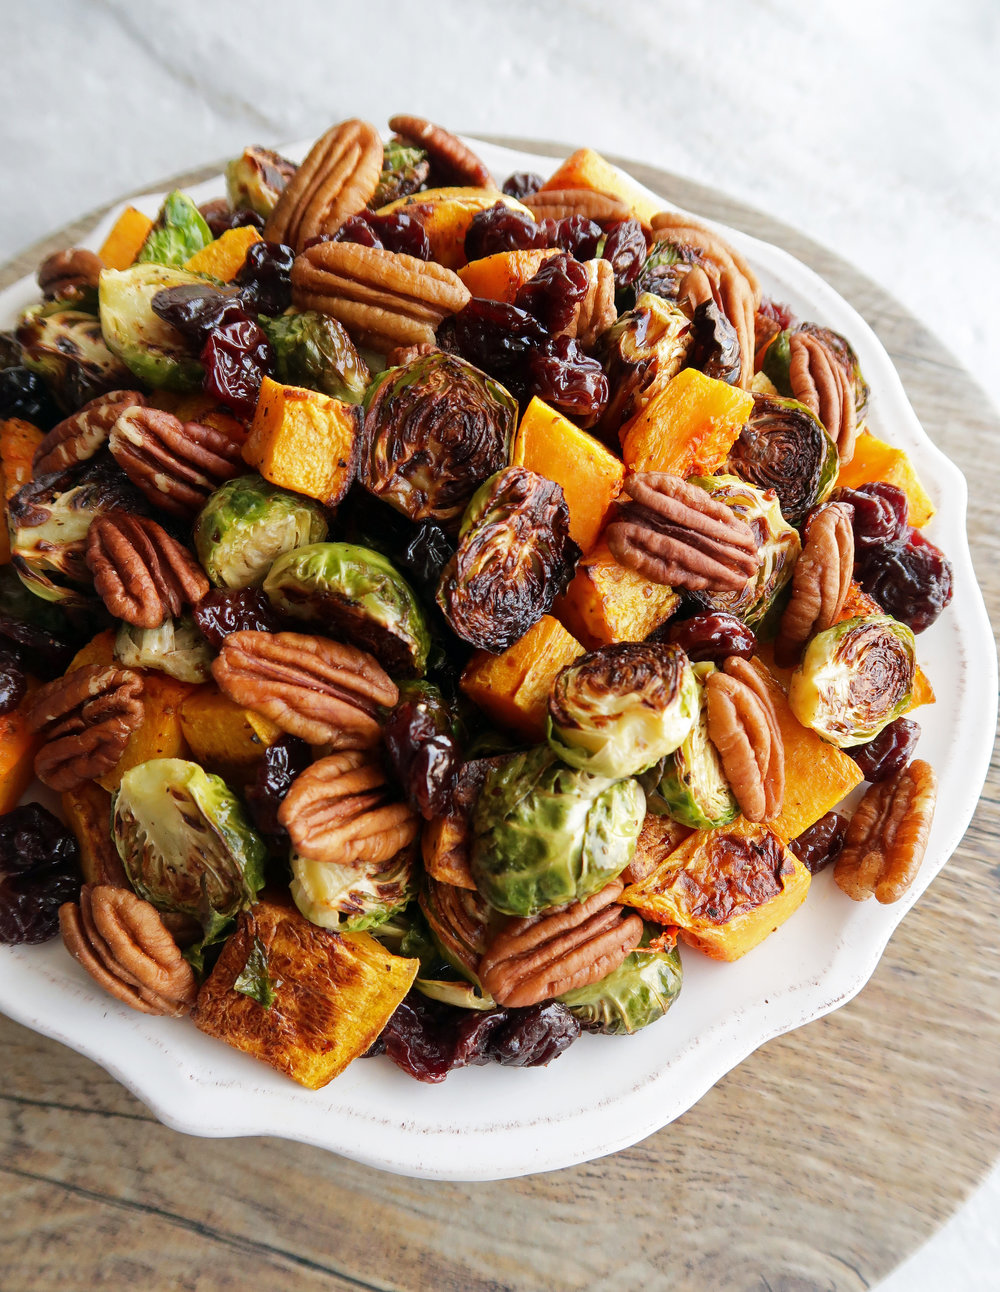 White plate of roasted butternut squash and Brussels sprouts with pecans and dried cherries.